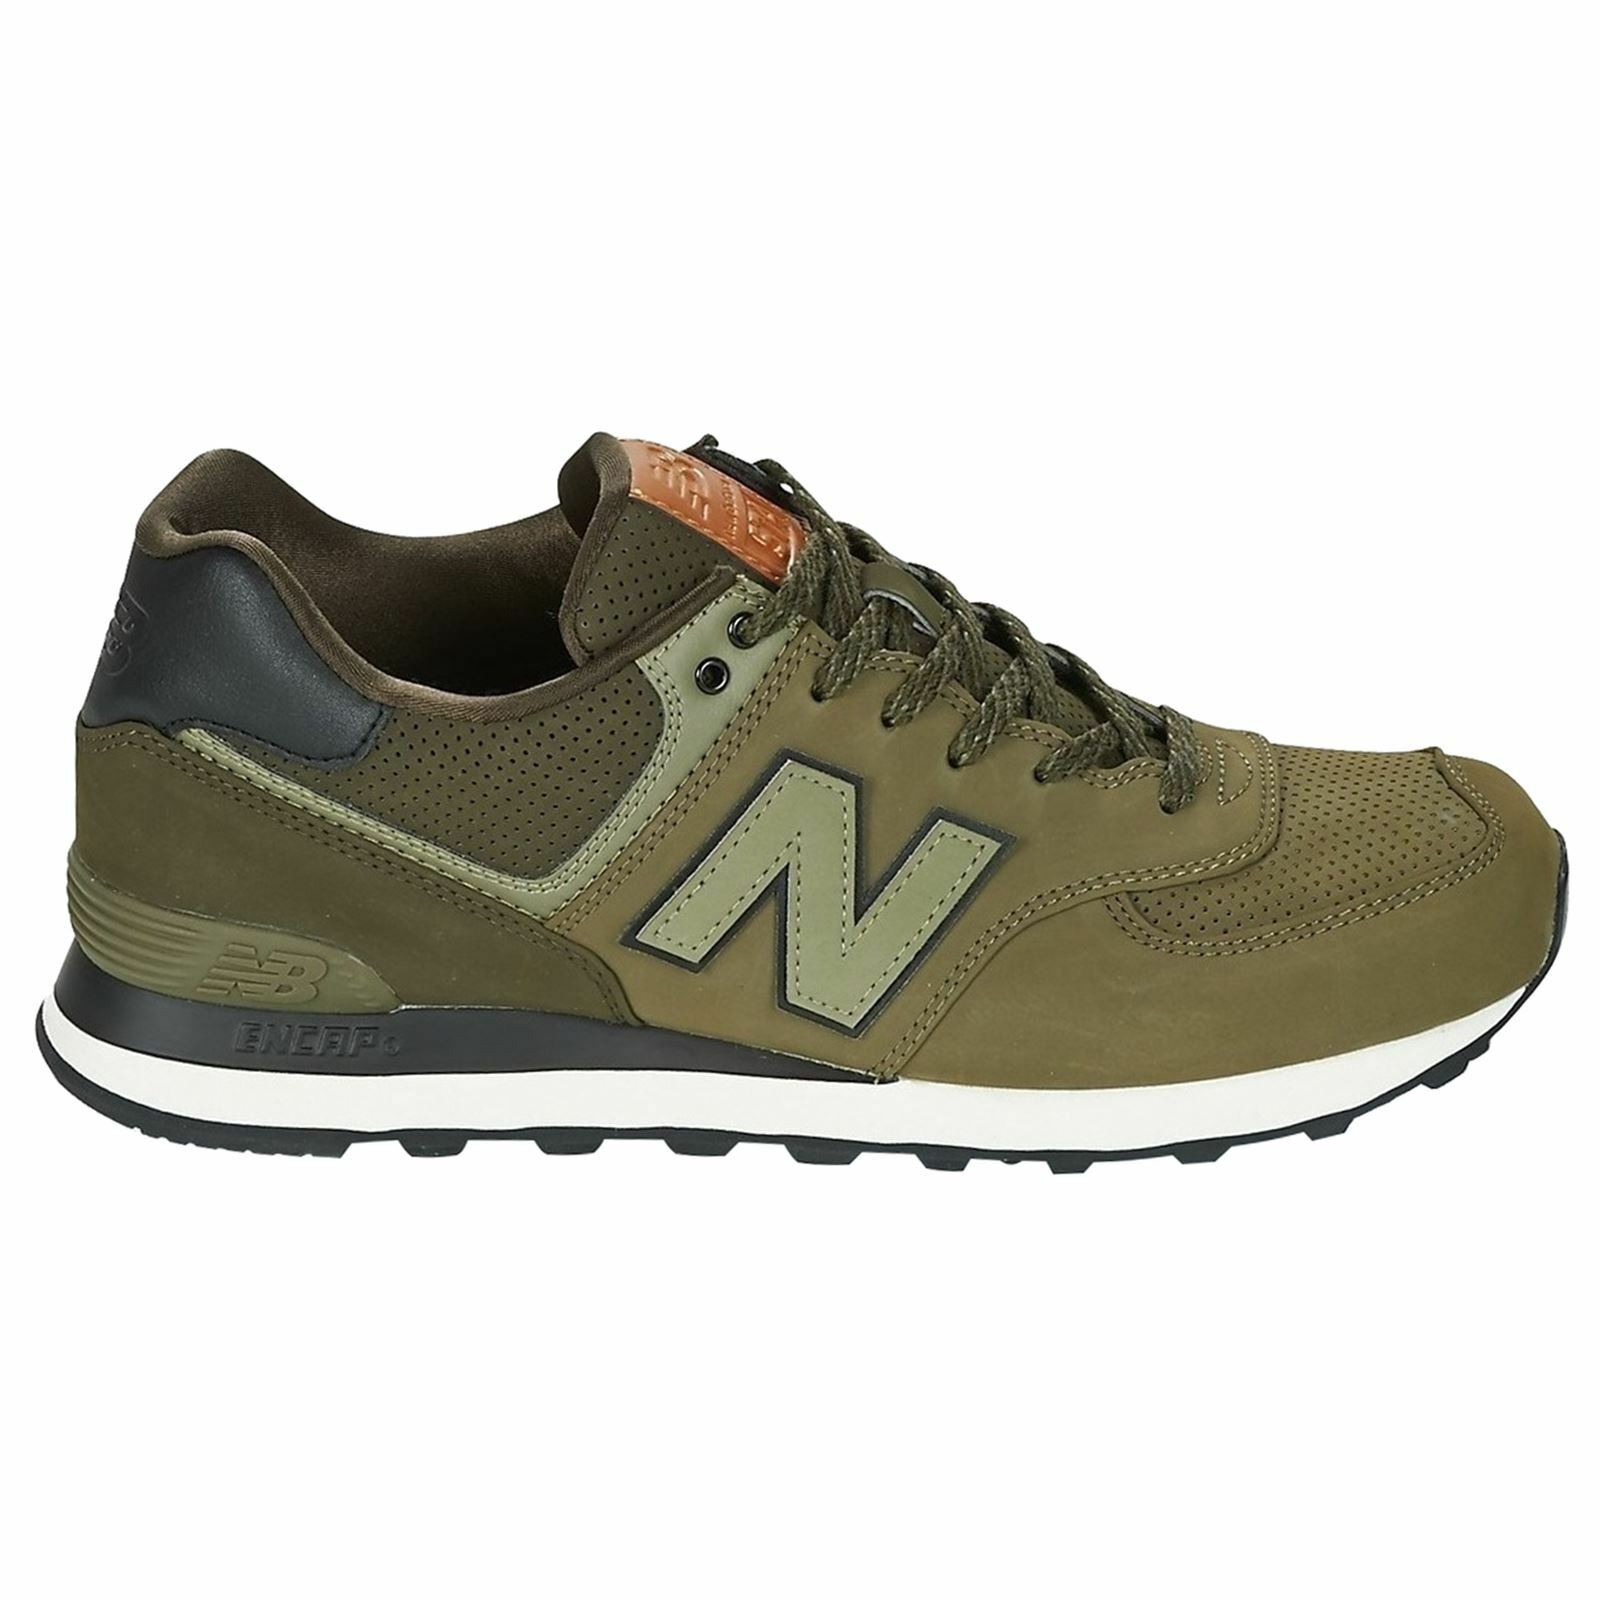 New Balance 574 Classics Triumph Green Dark Military Green Mens Trainers New